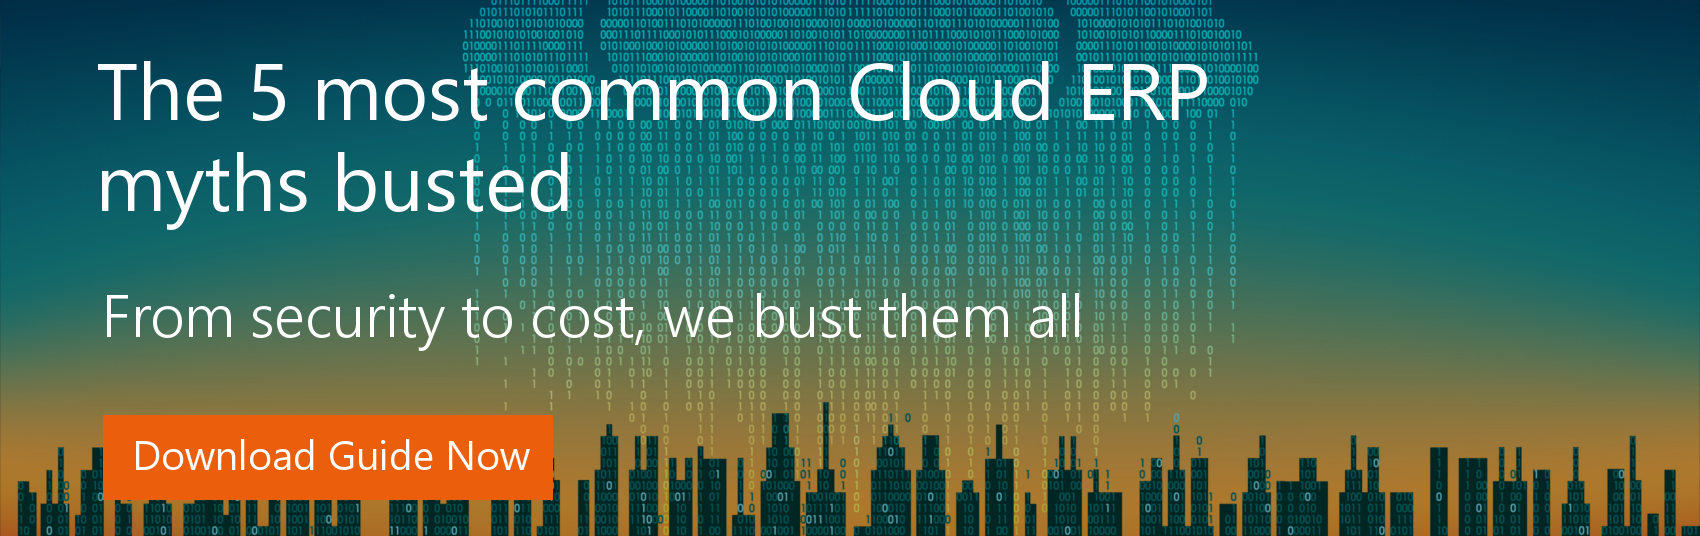 5 most common cloud ERP myths busted